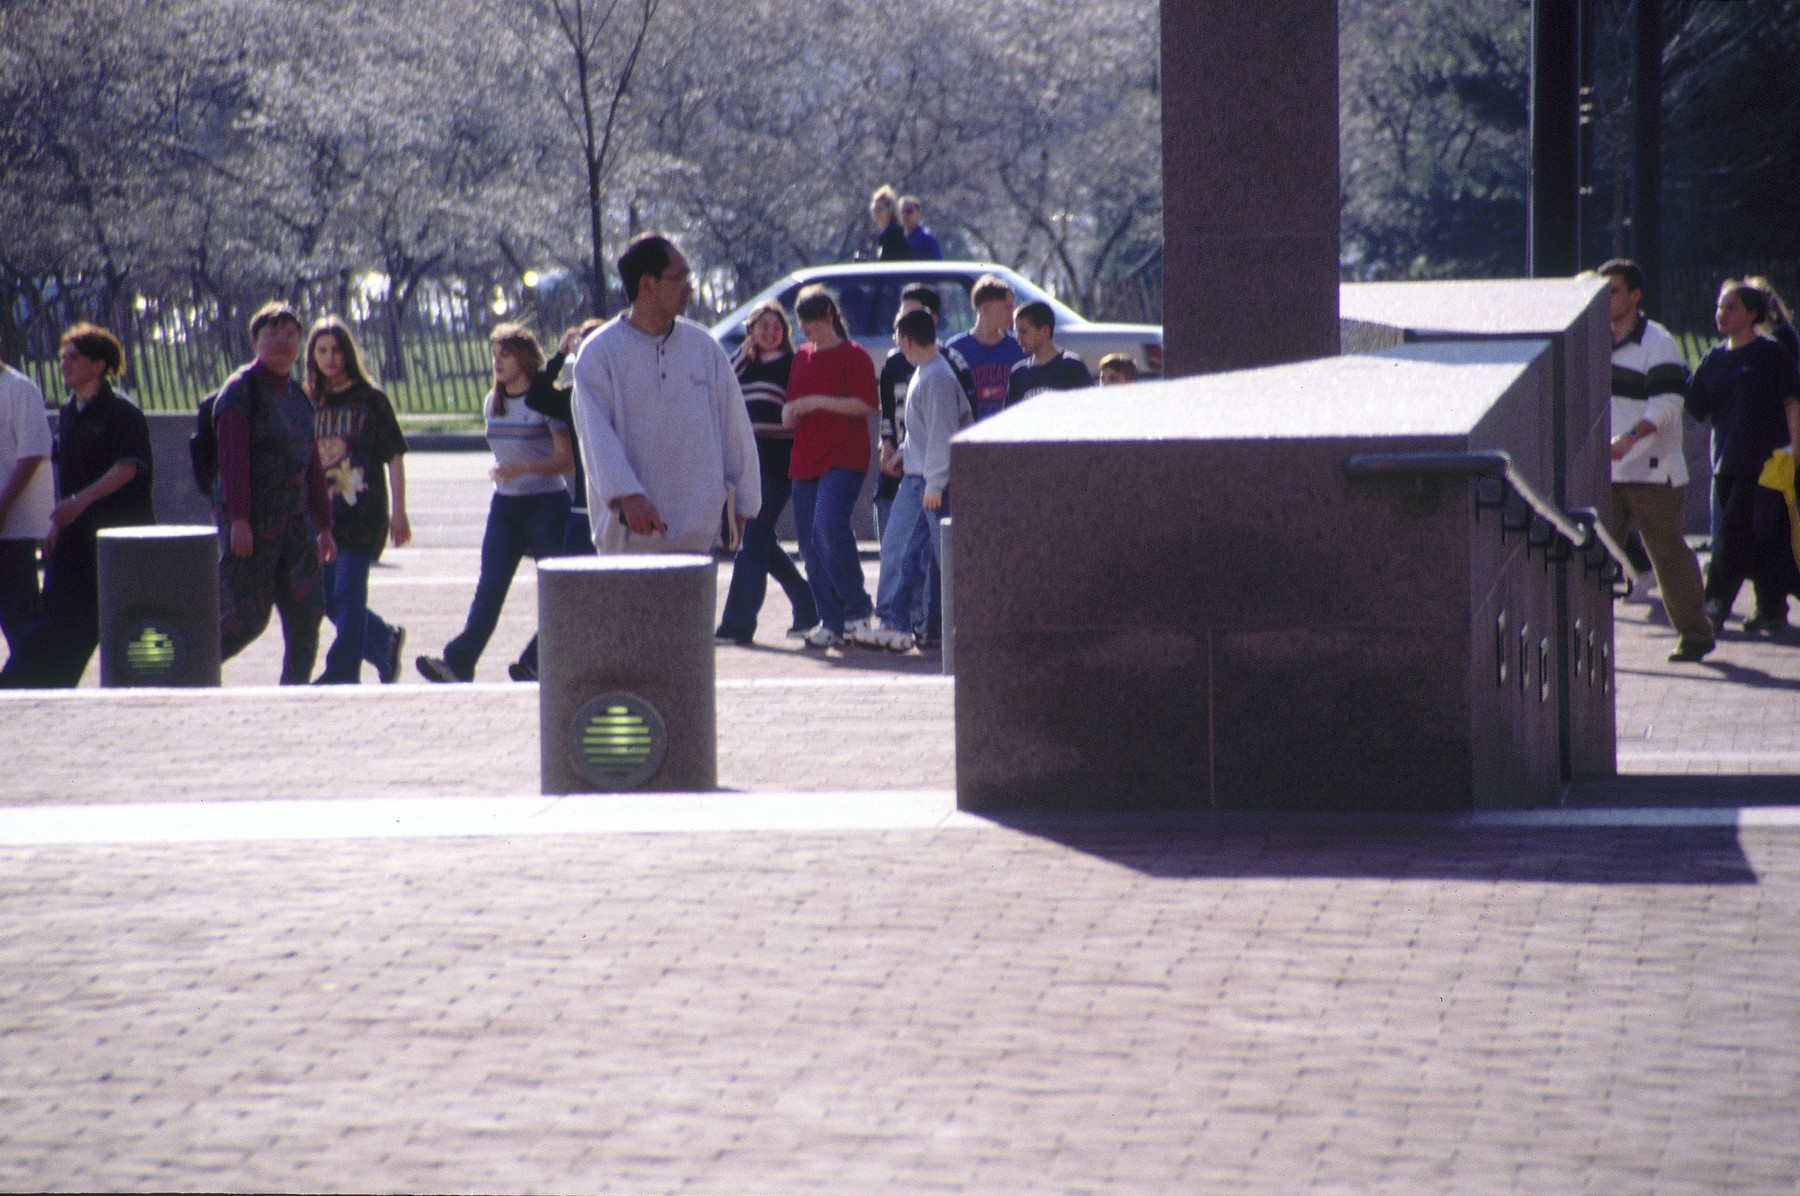 Visitors enter the Eisenhower Plaza in front of the U.S. Holocaust Memorial Museum.